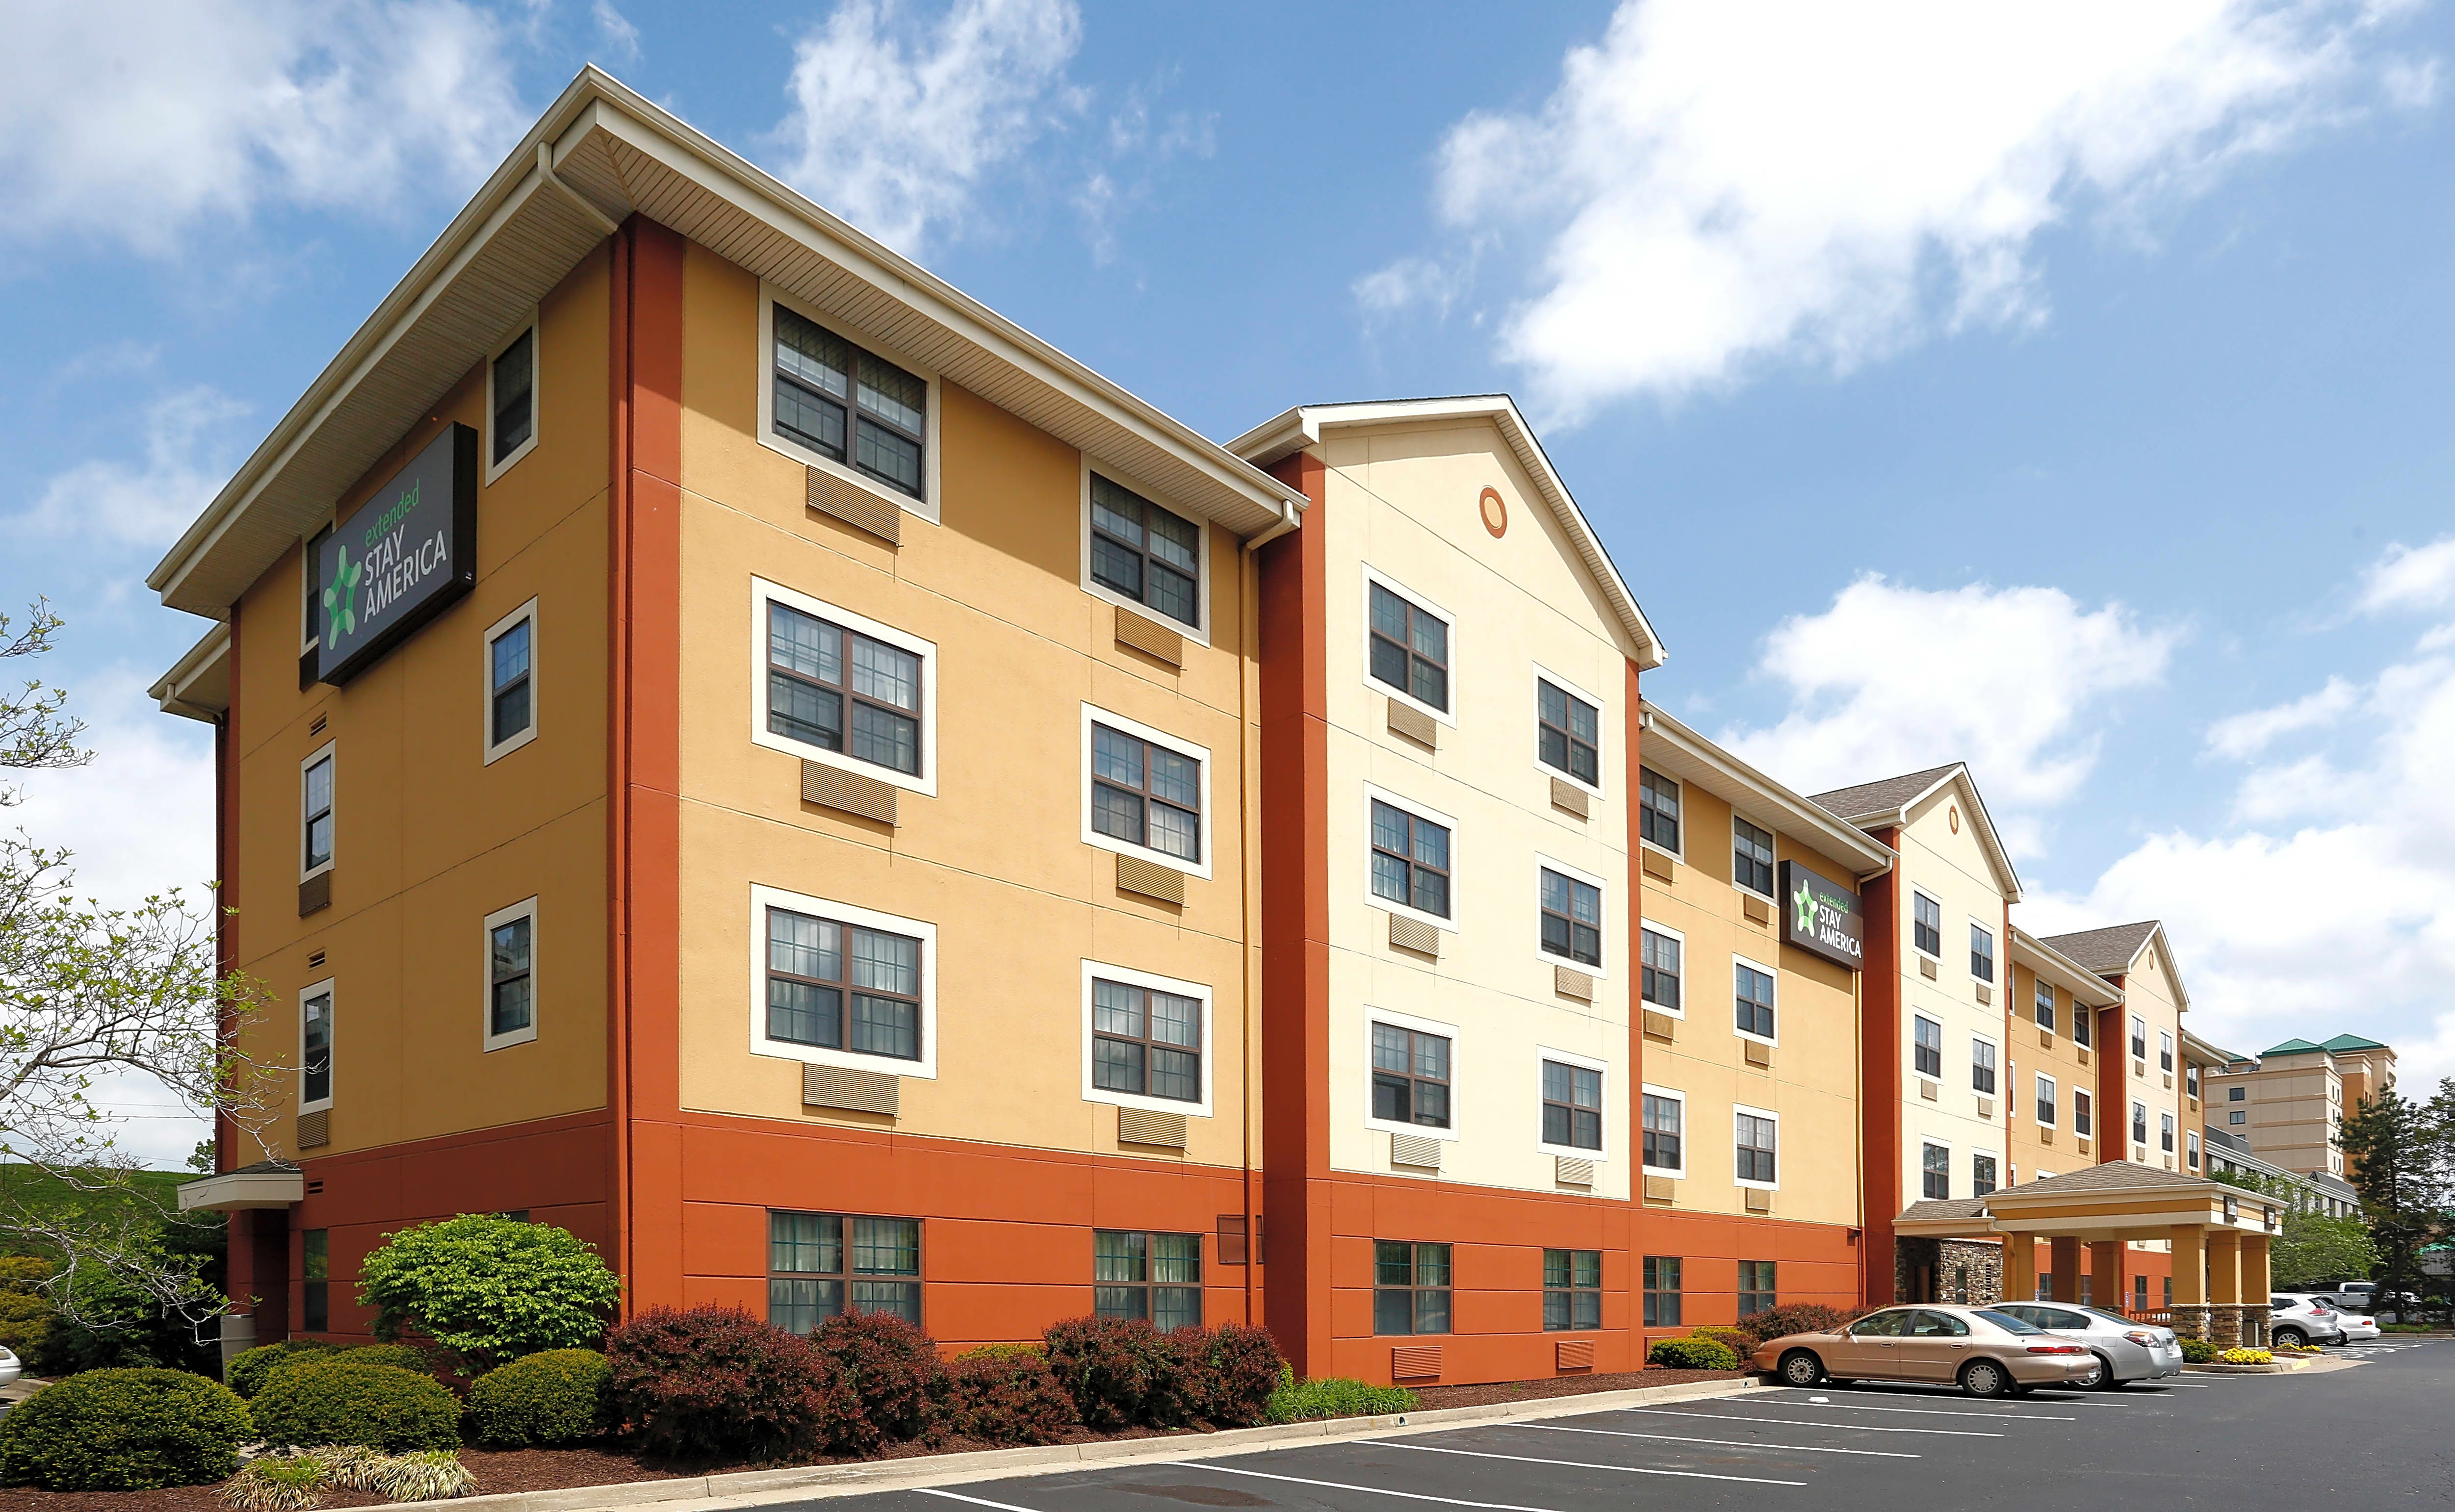 Apartments Near Thomas More Furnished Studio - Cincinnati - Covington for Thomas More College Students in Crestview Hills, KY